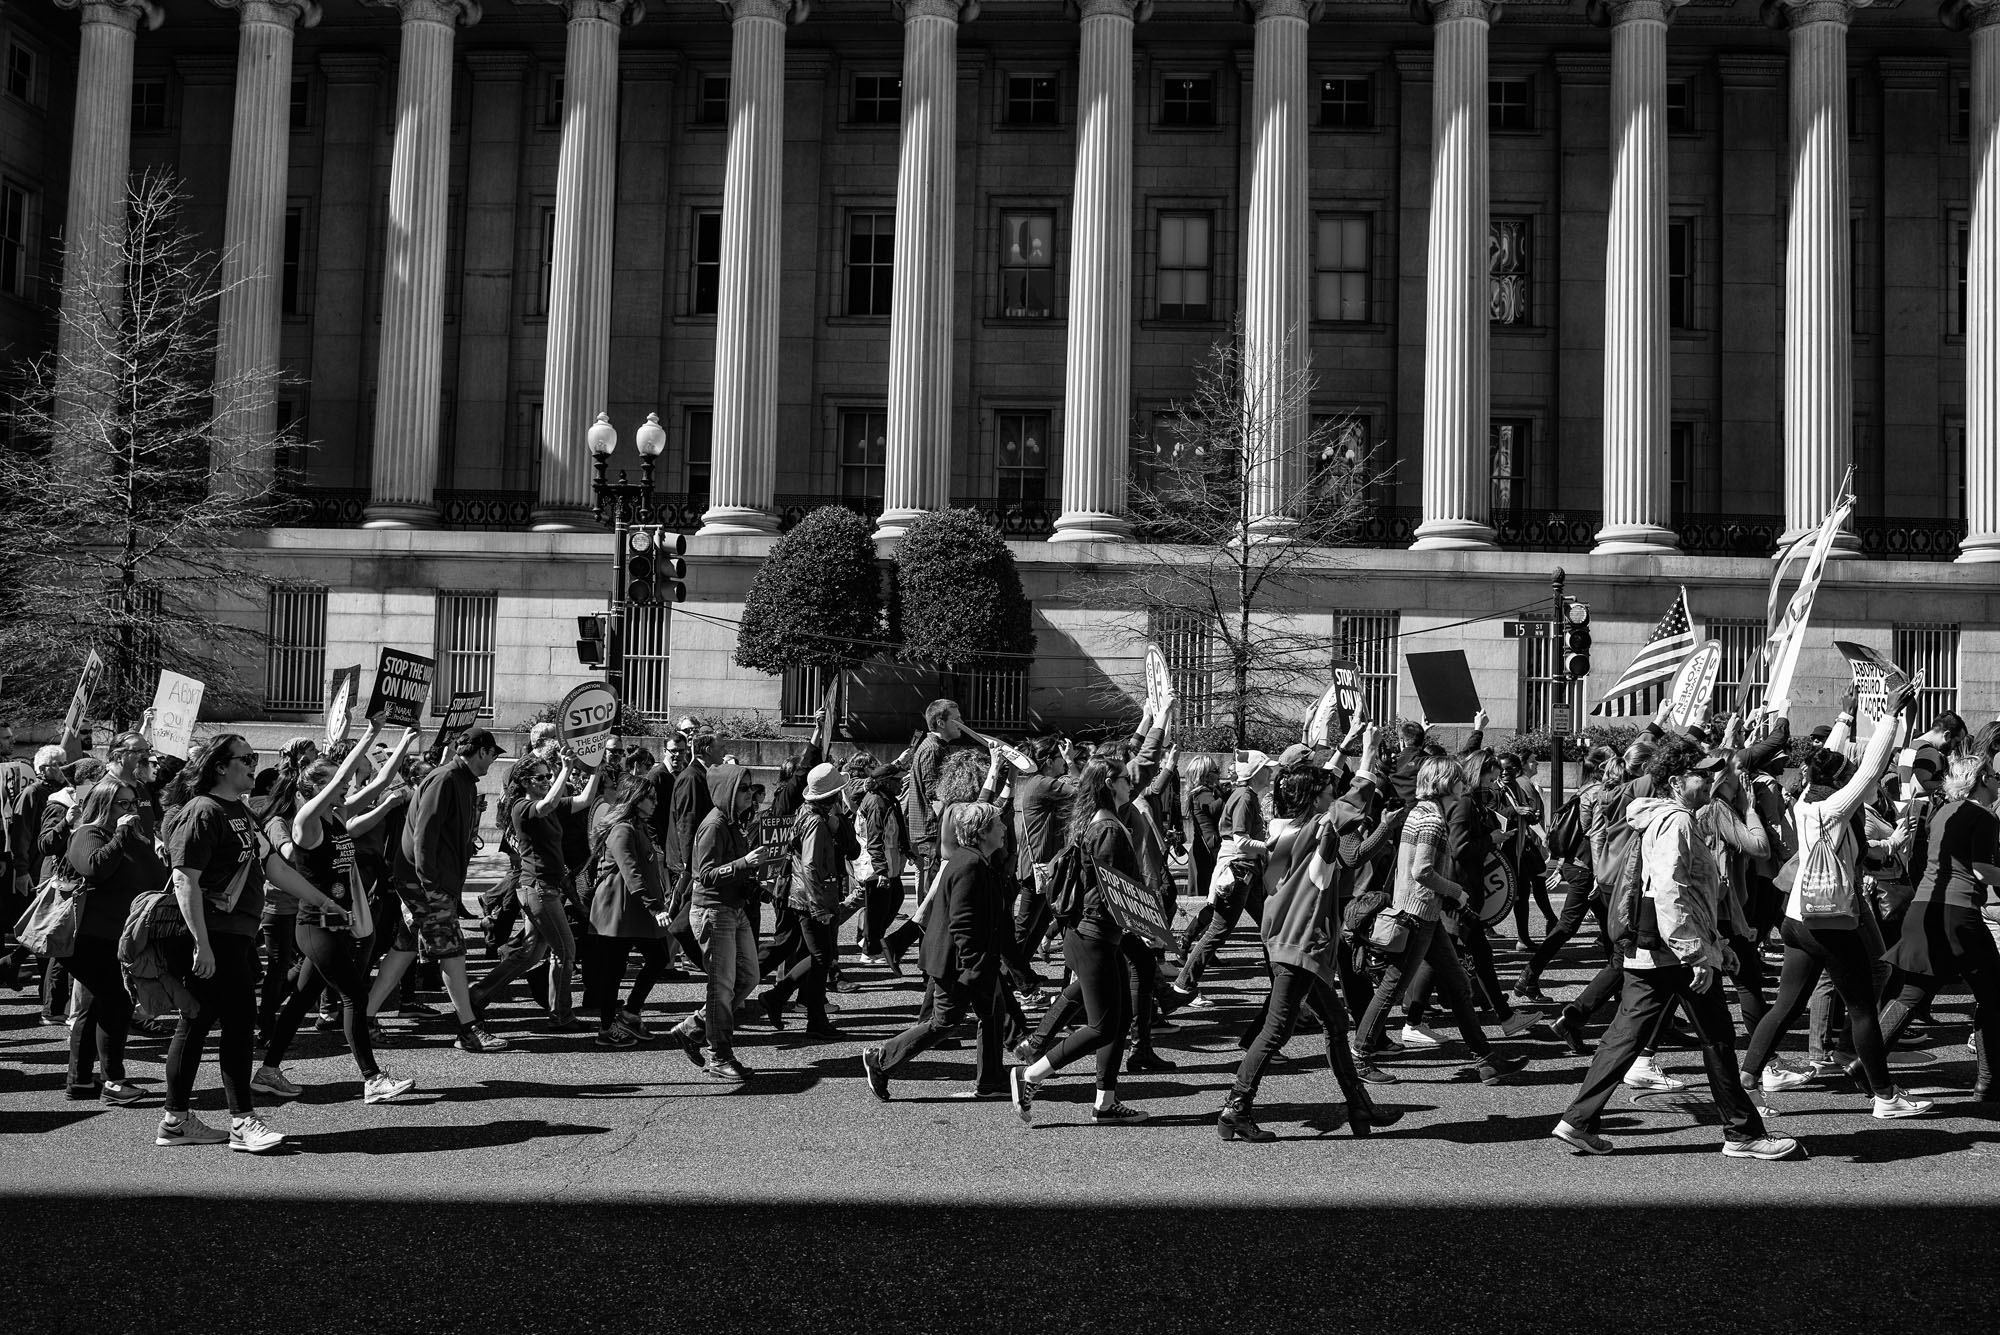 People march by the US Department of the Treasury at the Day Without Women protest in Washington, DC on March 8, 2017.